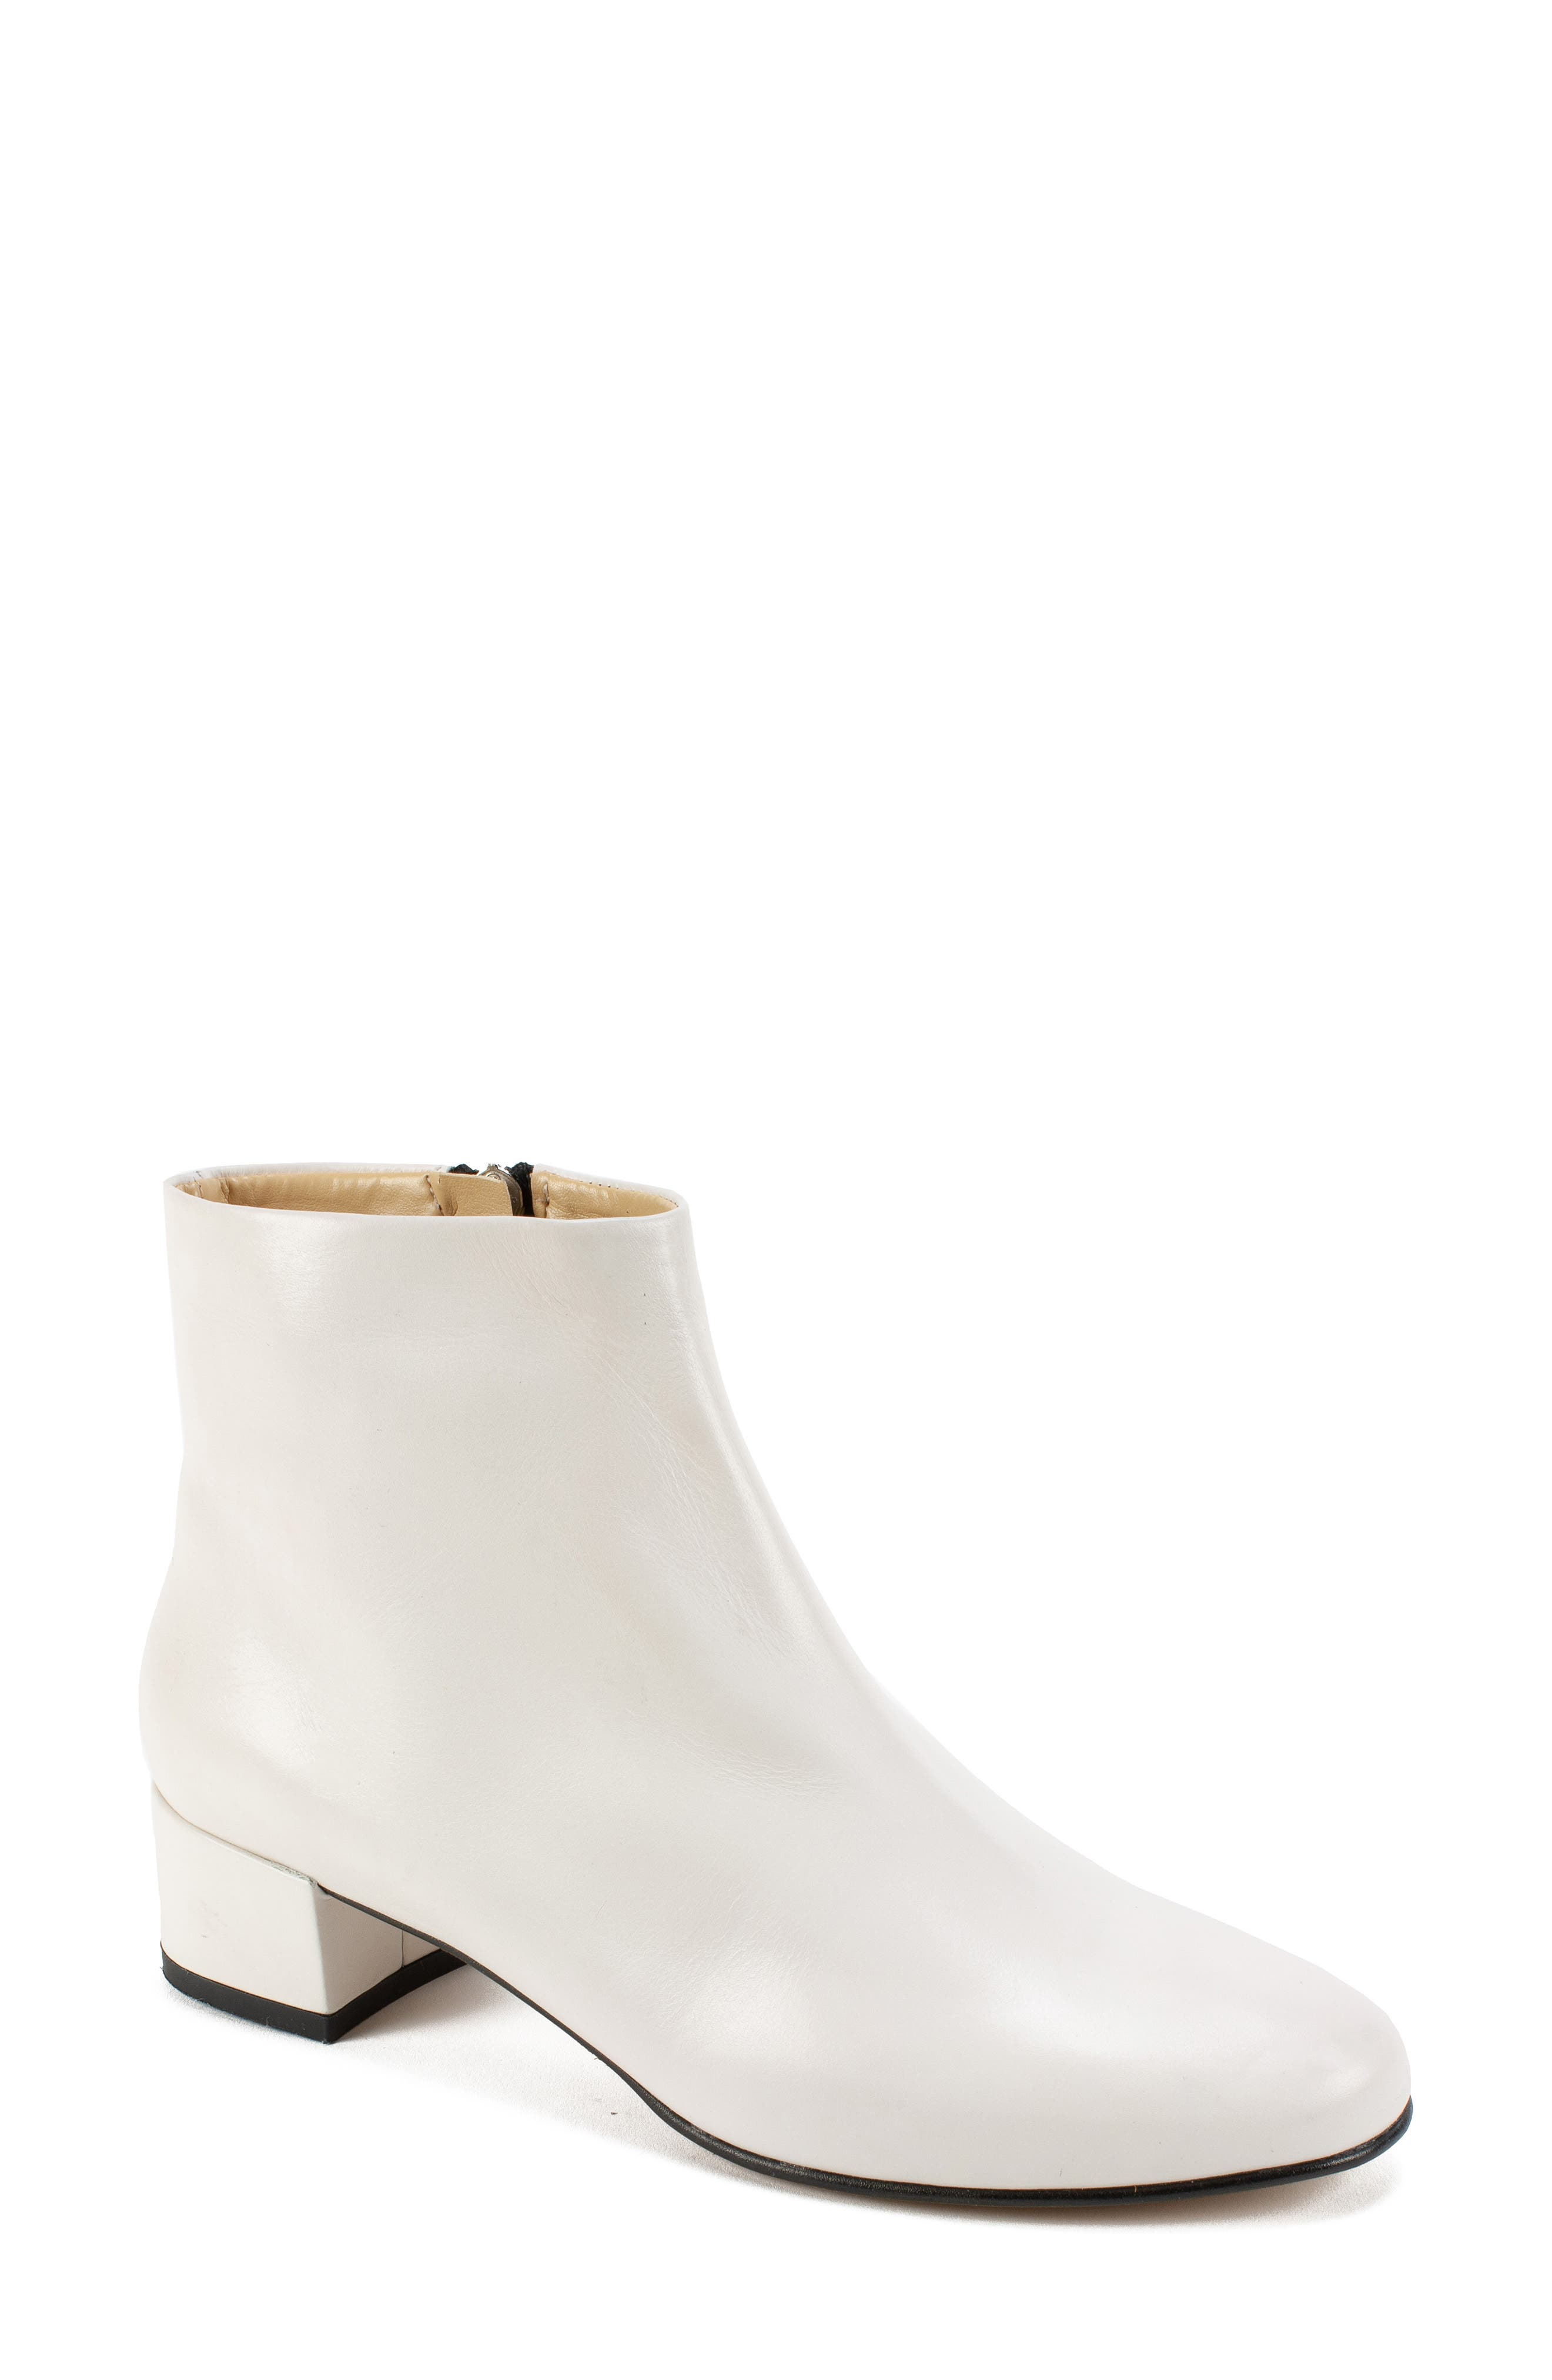 Summit By White Mountain Jordie Block Heel Bootie White